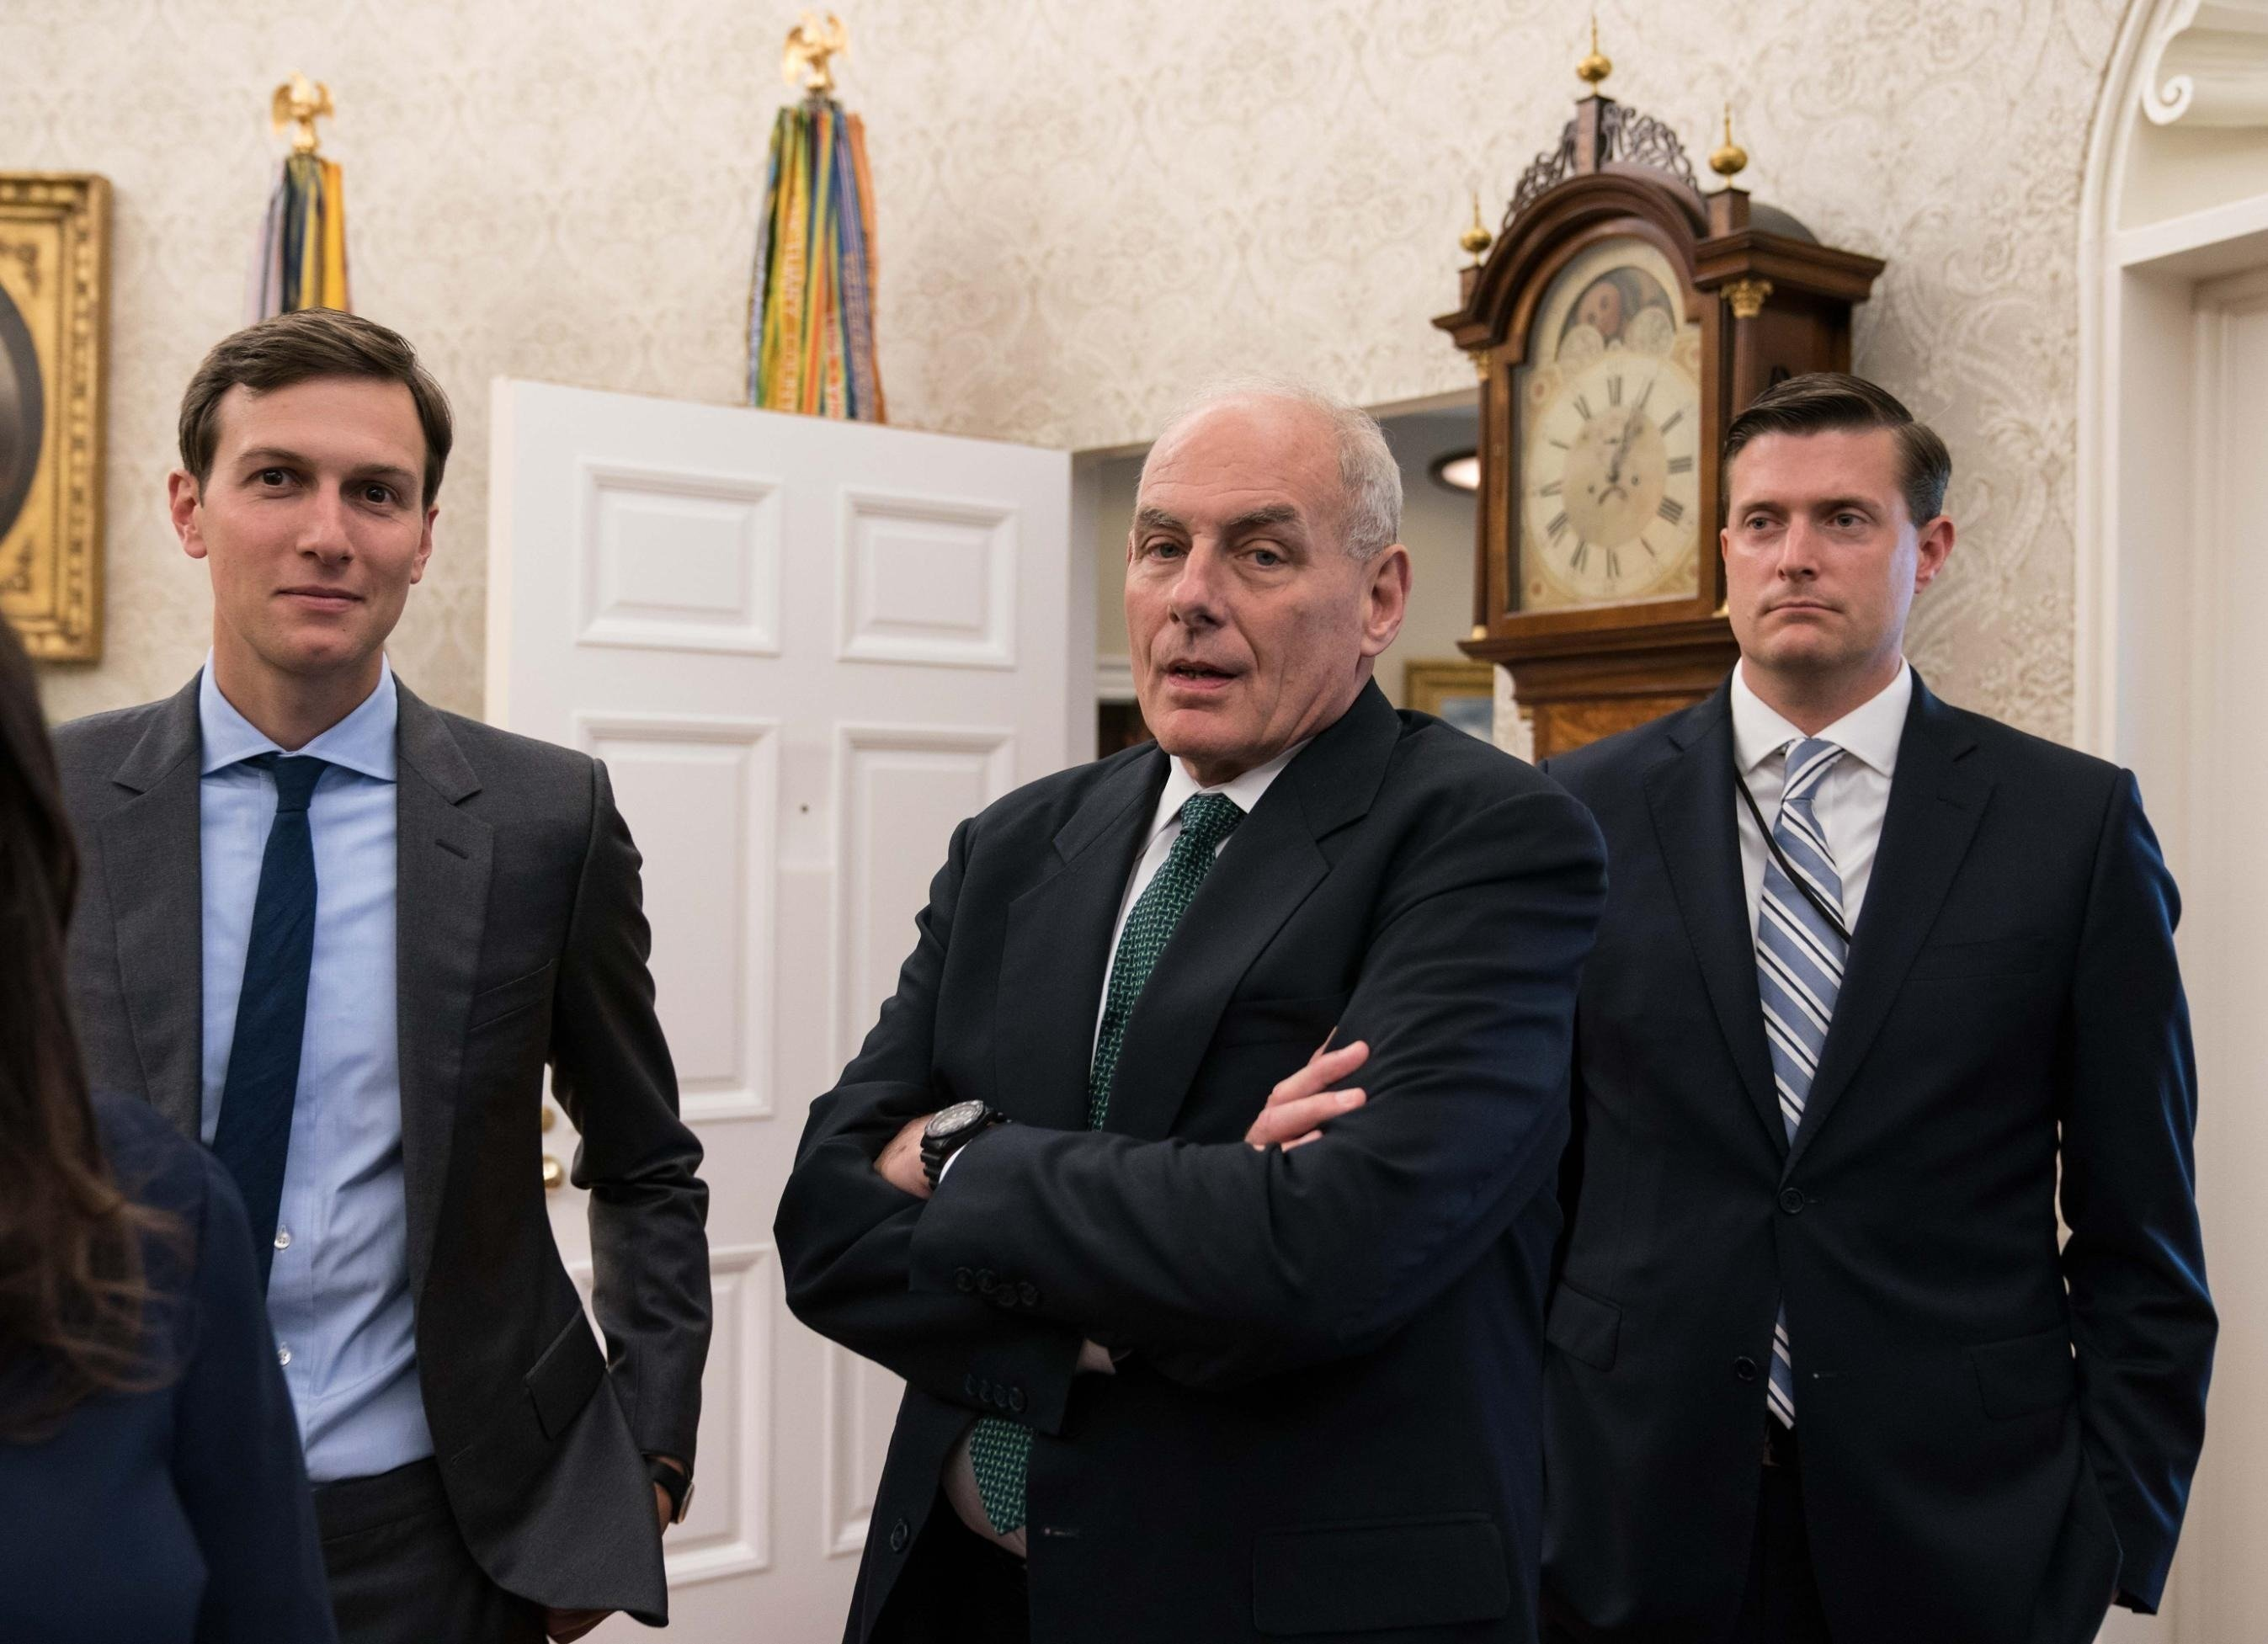 Republicans are growing increasingly concerned at President Donald Trump's inability to quiet the Rob Porter abuse scandal, which has engulfed the administration even as it works to capitalize on recent successes.